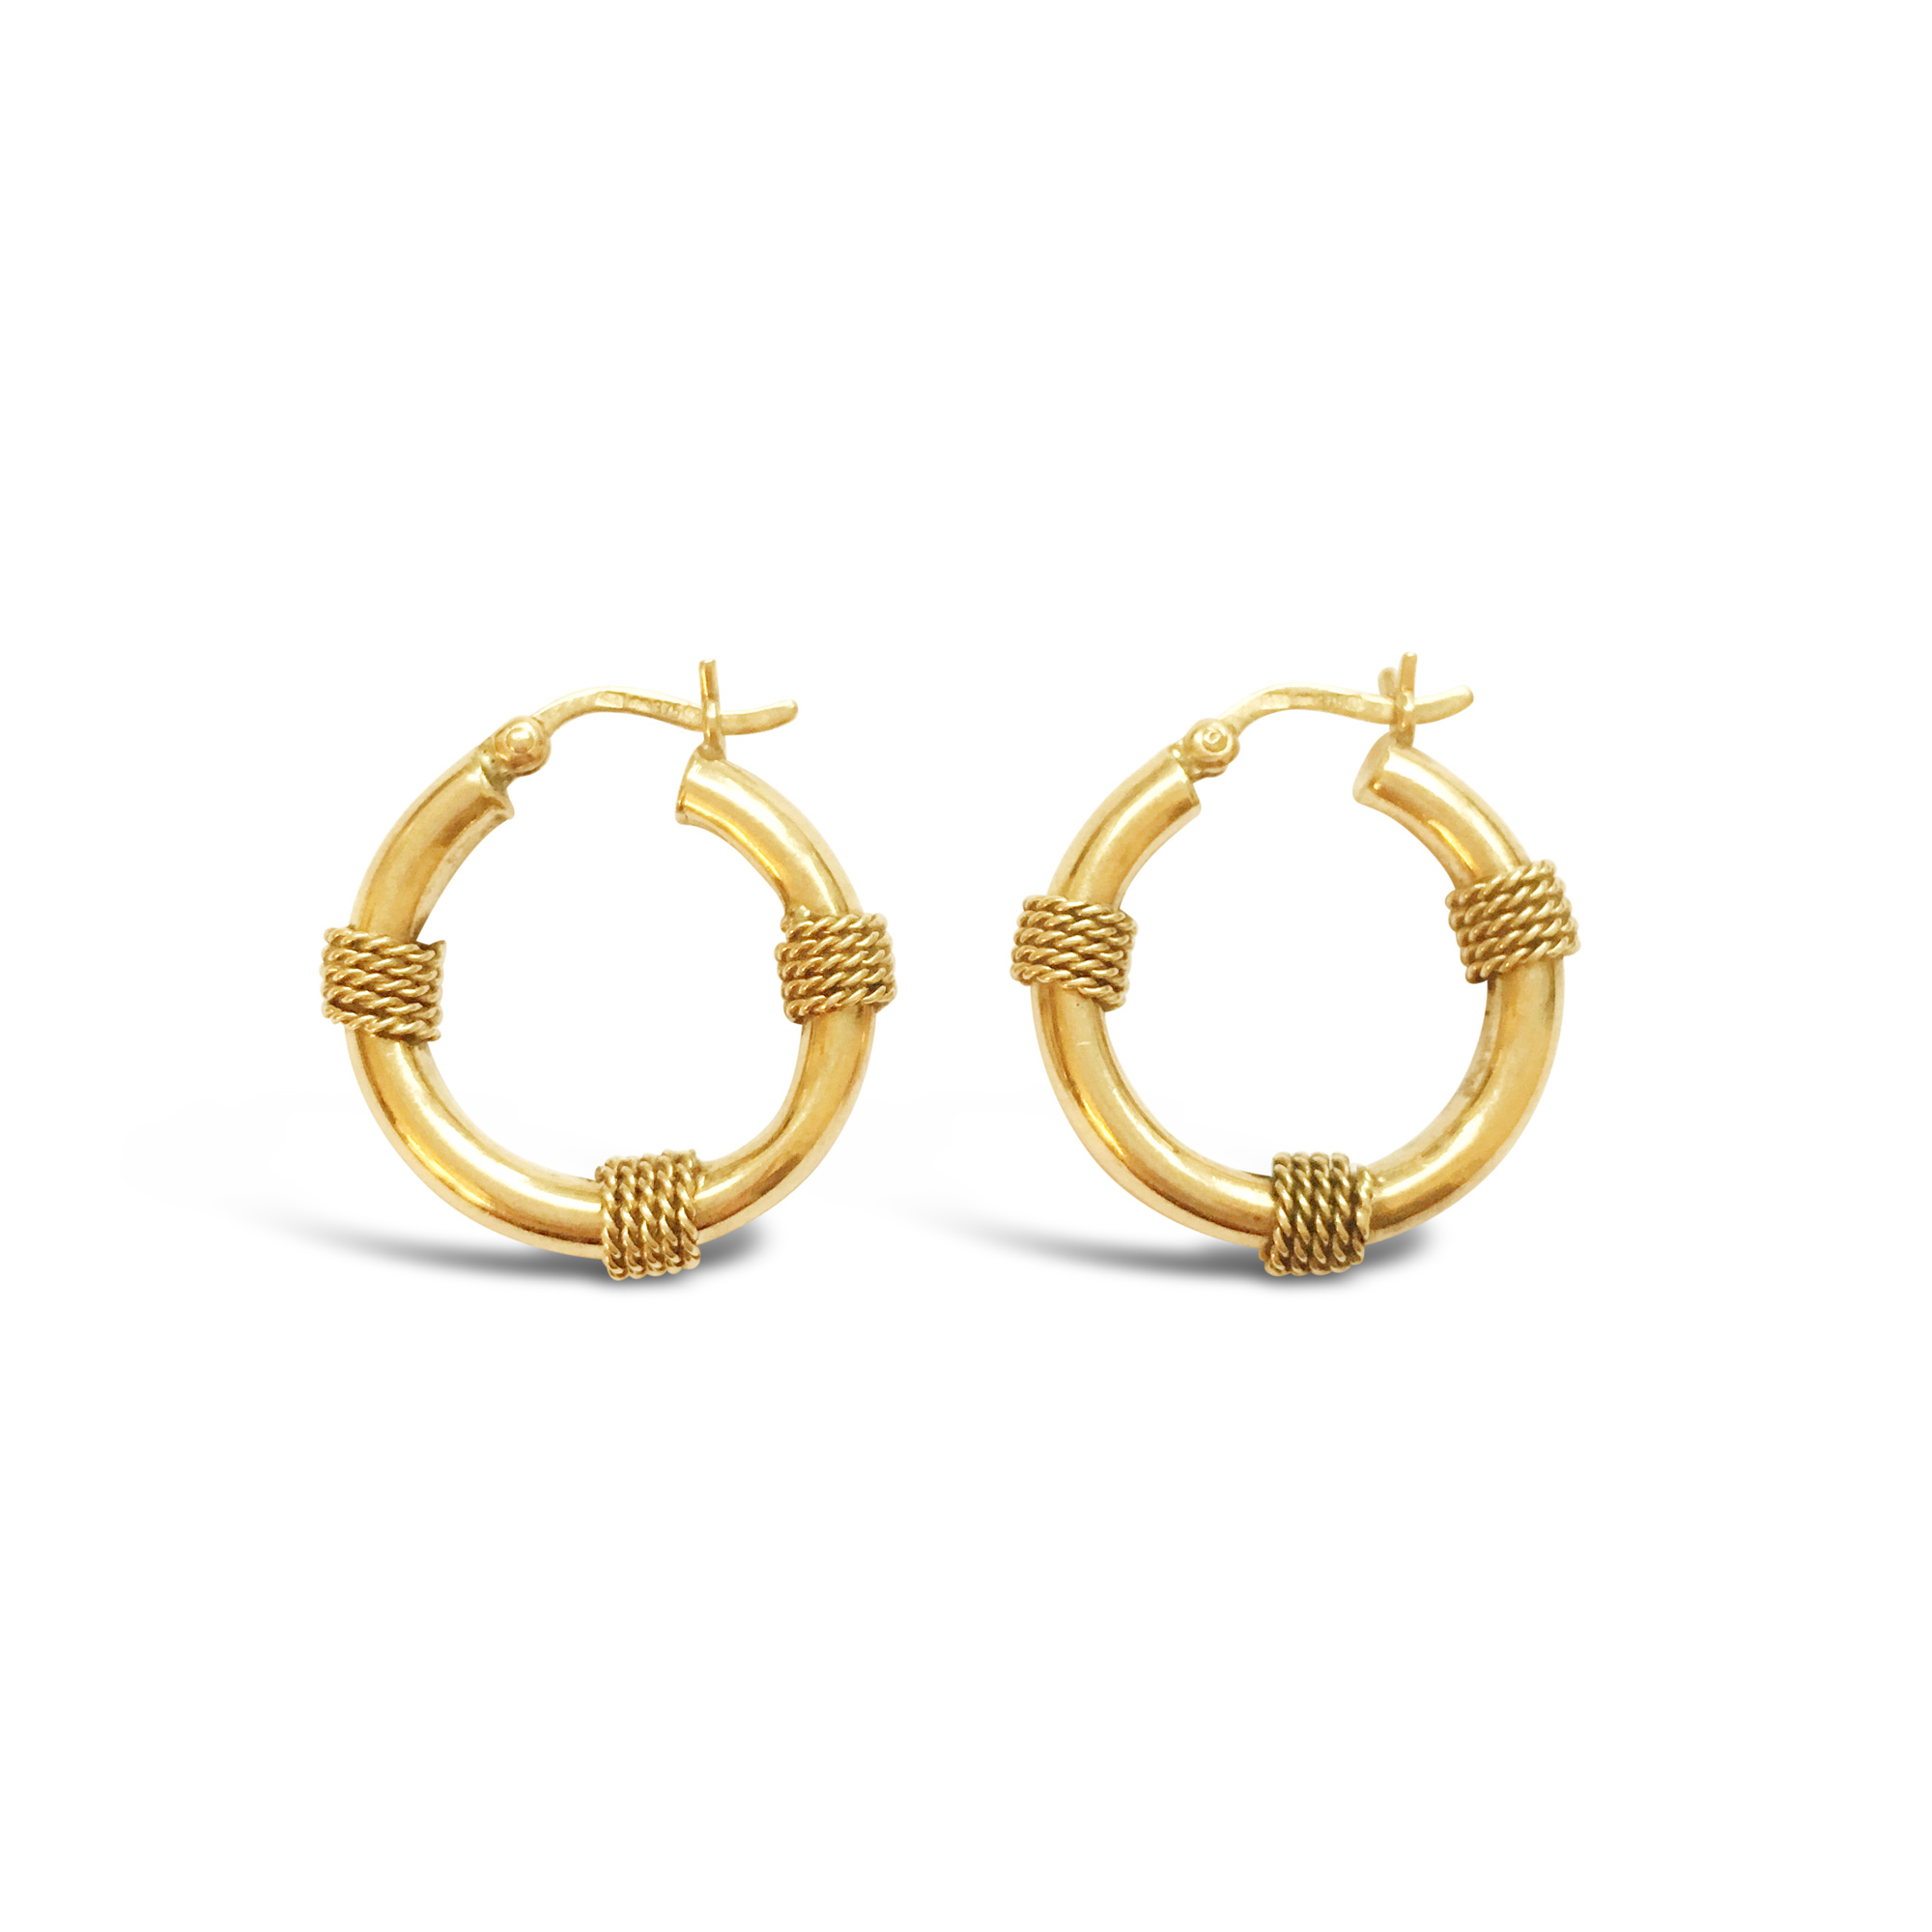 Vintage yellow gold nautical earrings